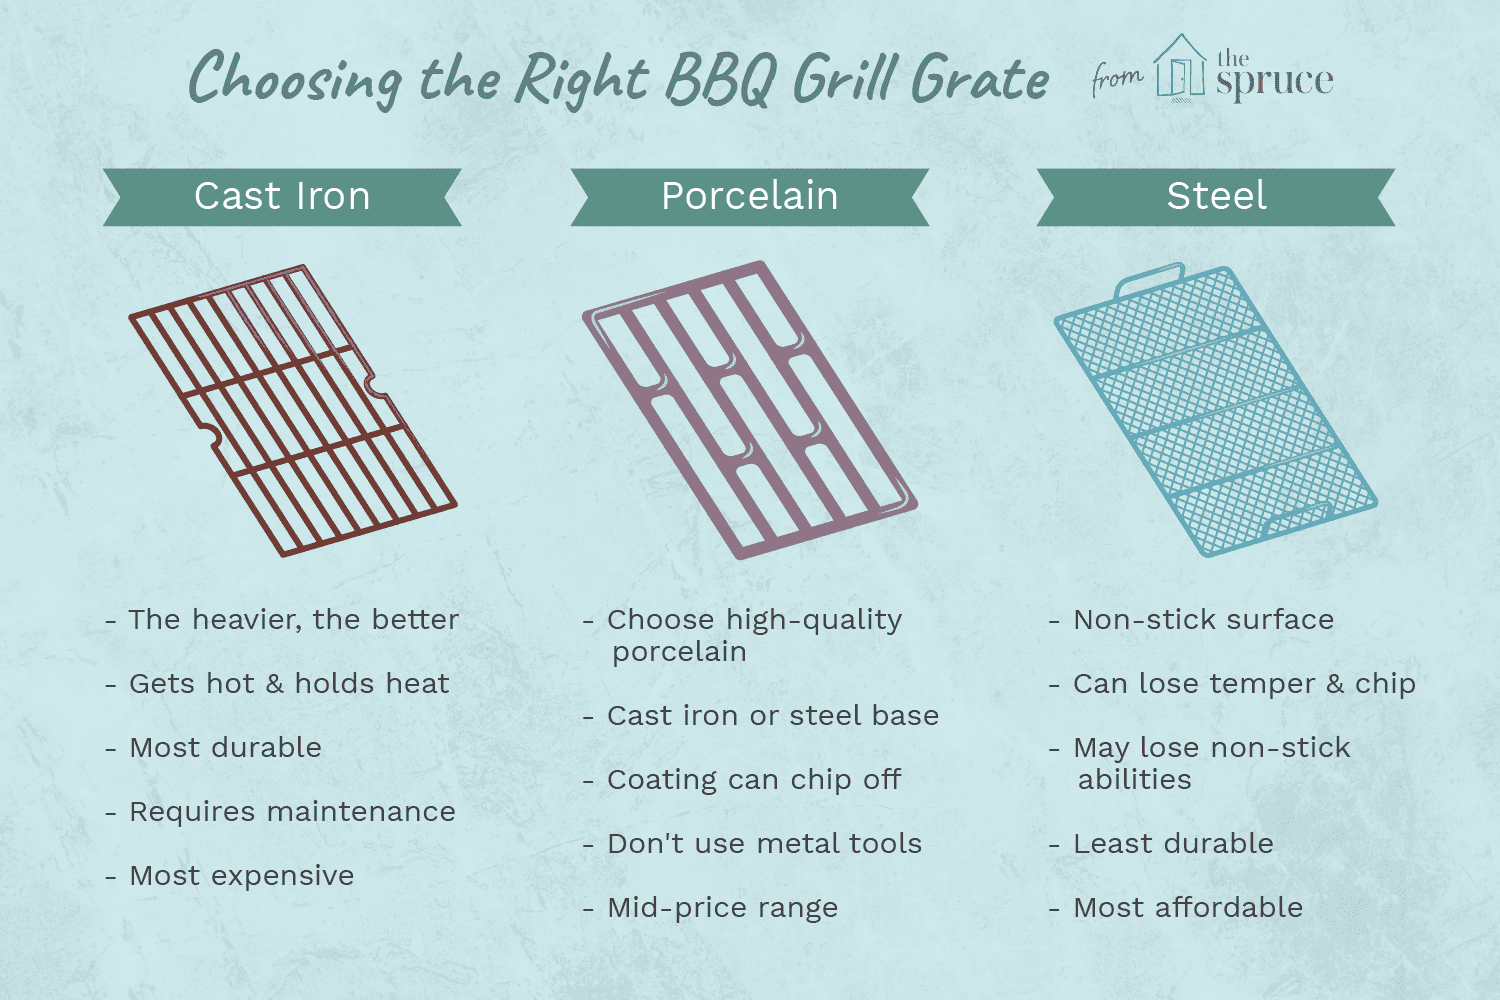 how to choose the right grate for your grill